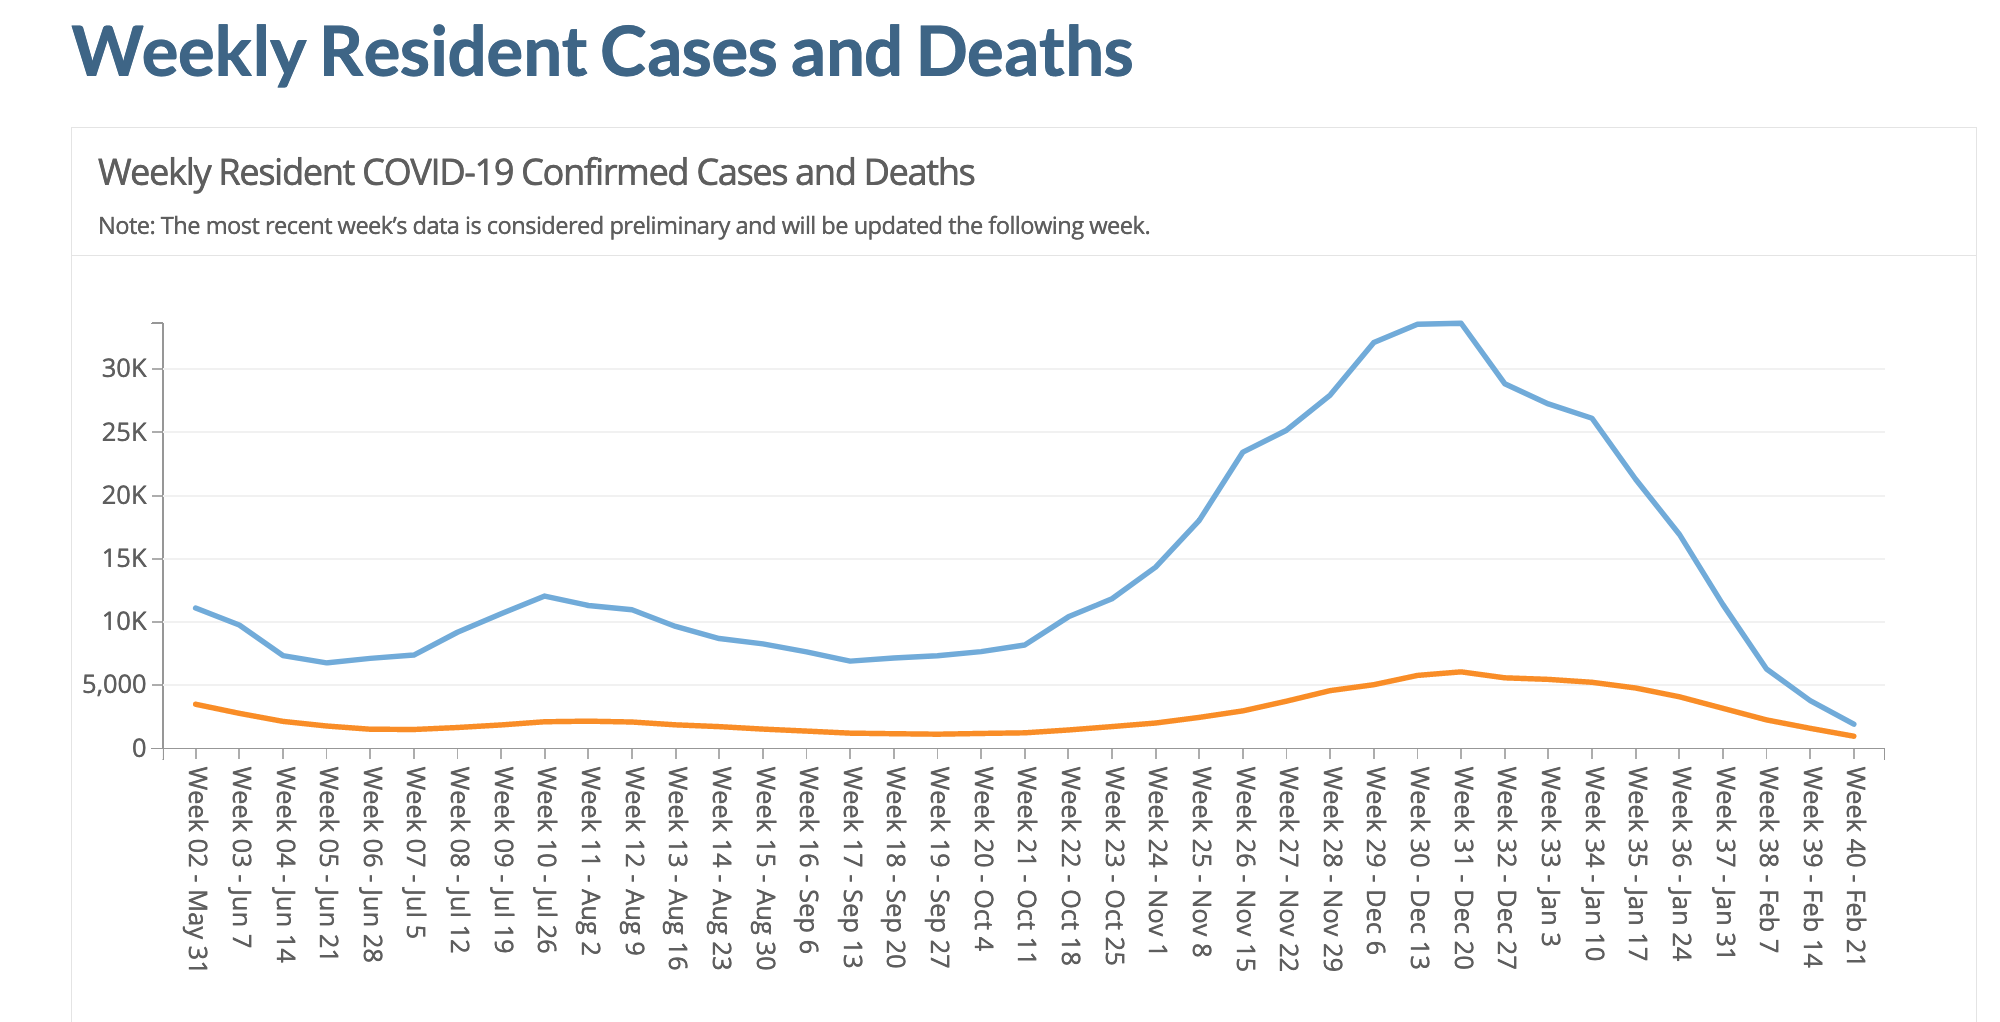 Line graph with two lines showing weekly confirmed cases and deaths for nursing home residents from May 31 2020 through February 21 2021. Weekly cases peak above 30,000 in mid- to late December 2020 and decline to below 5,000 weekly cases. Weekly deaths peak just about 5,000 in December 2020 and then decline.